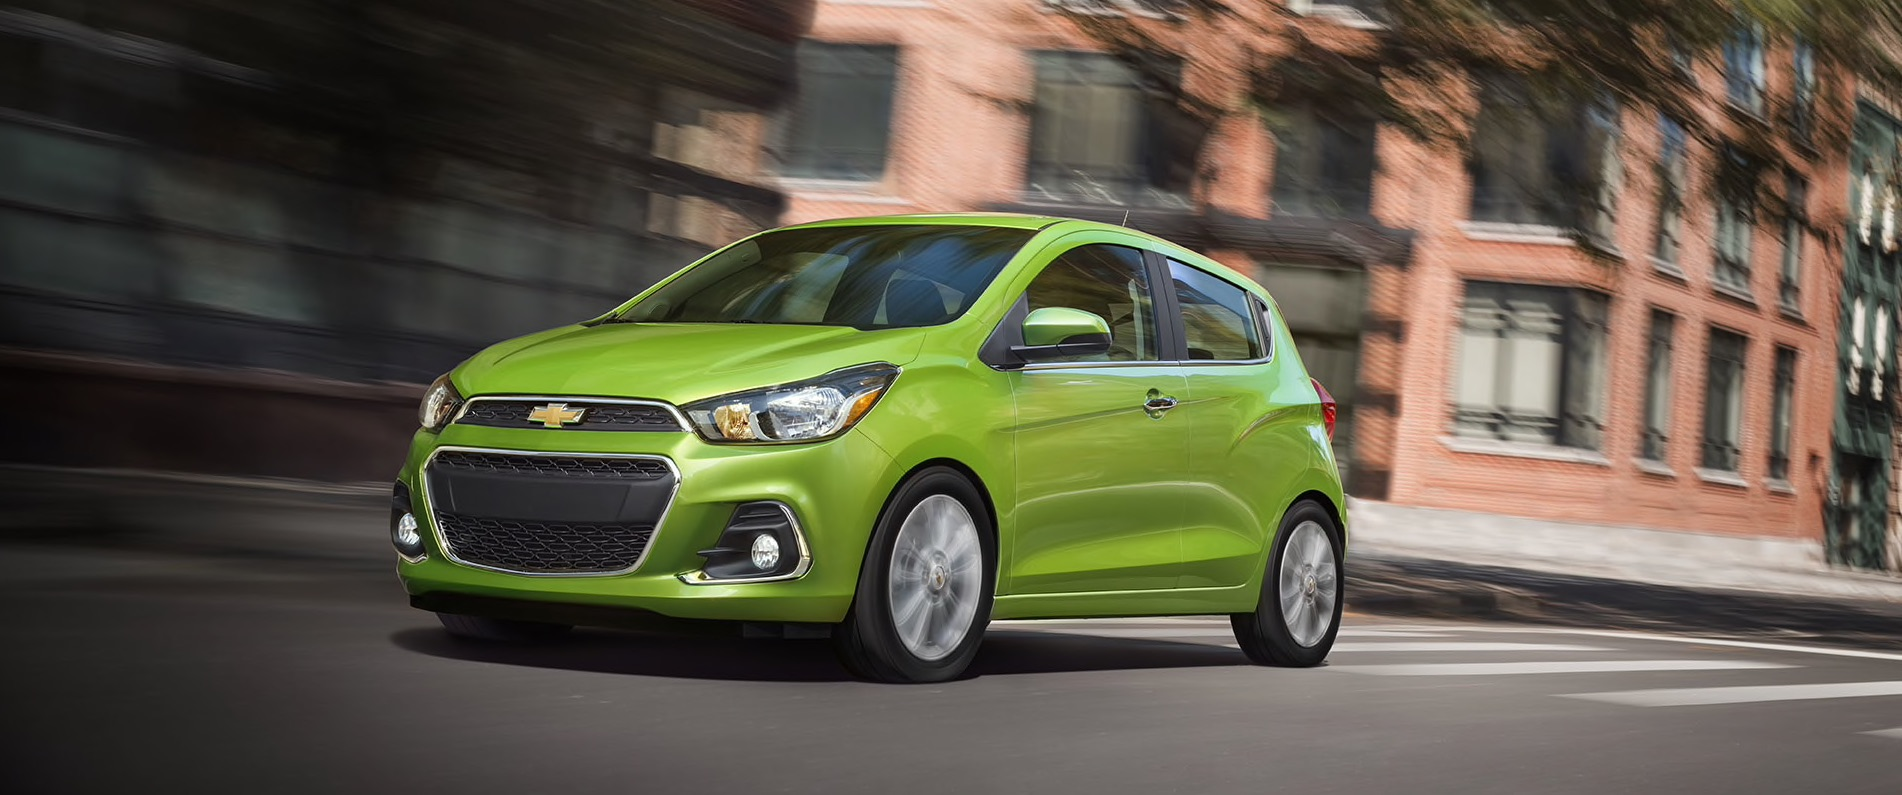 2016 Chevy Spark Front